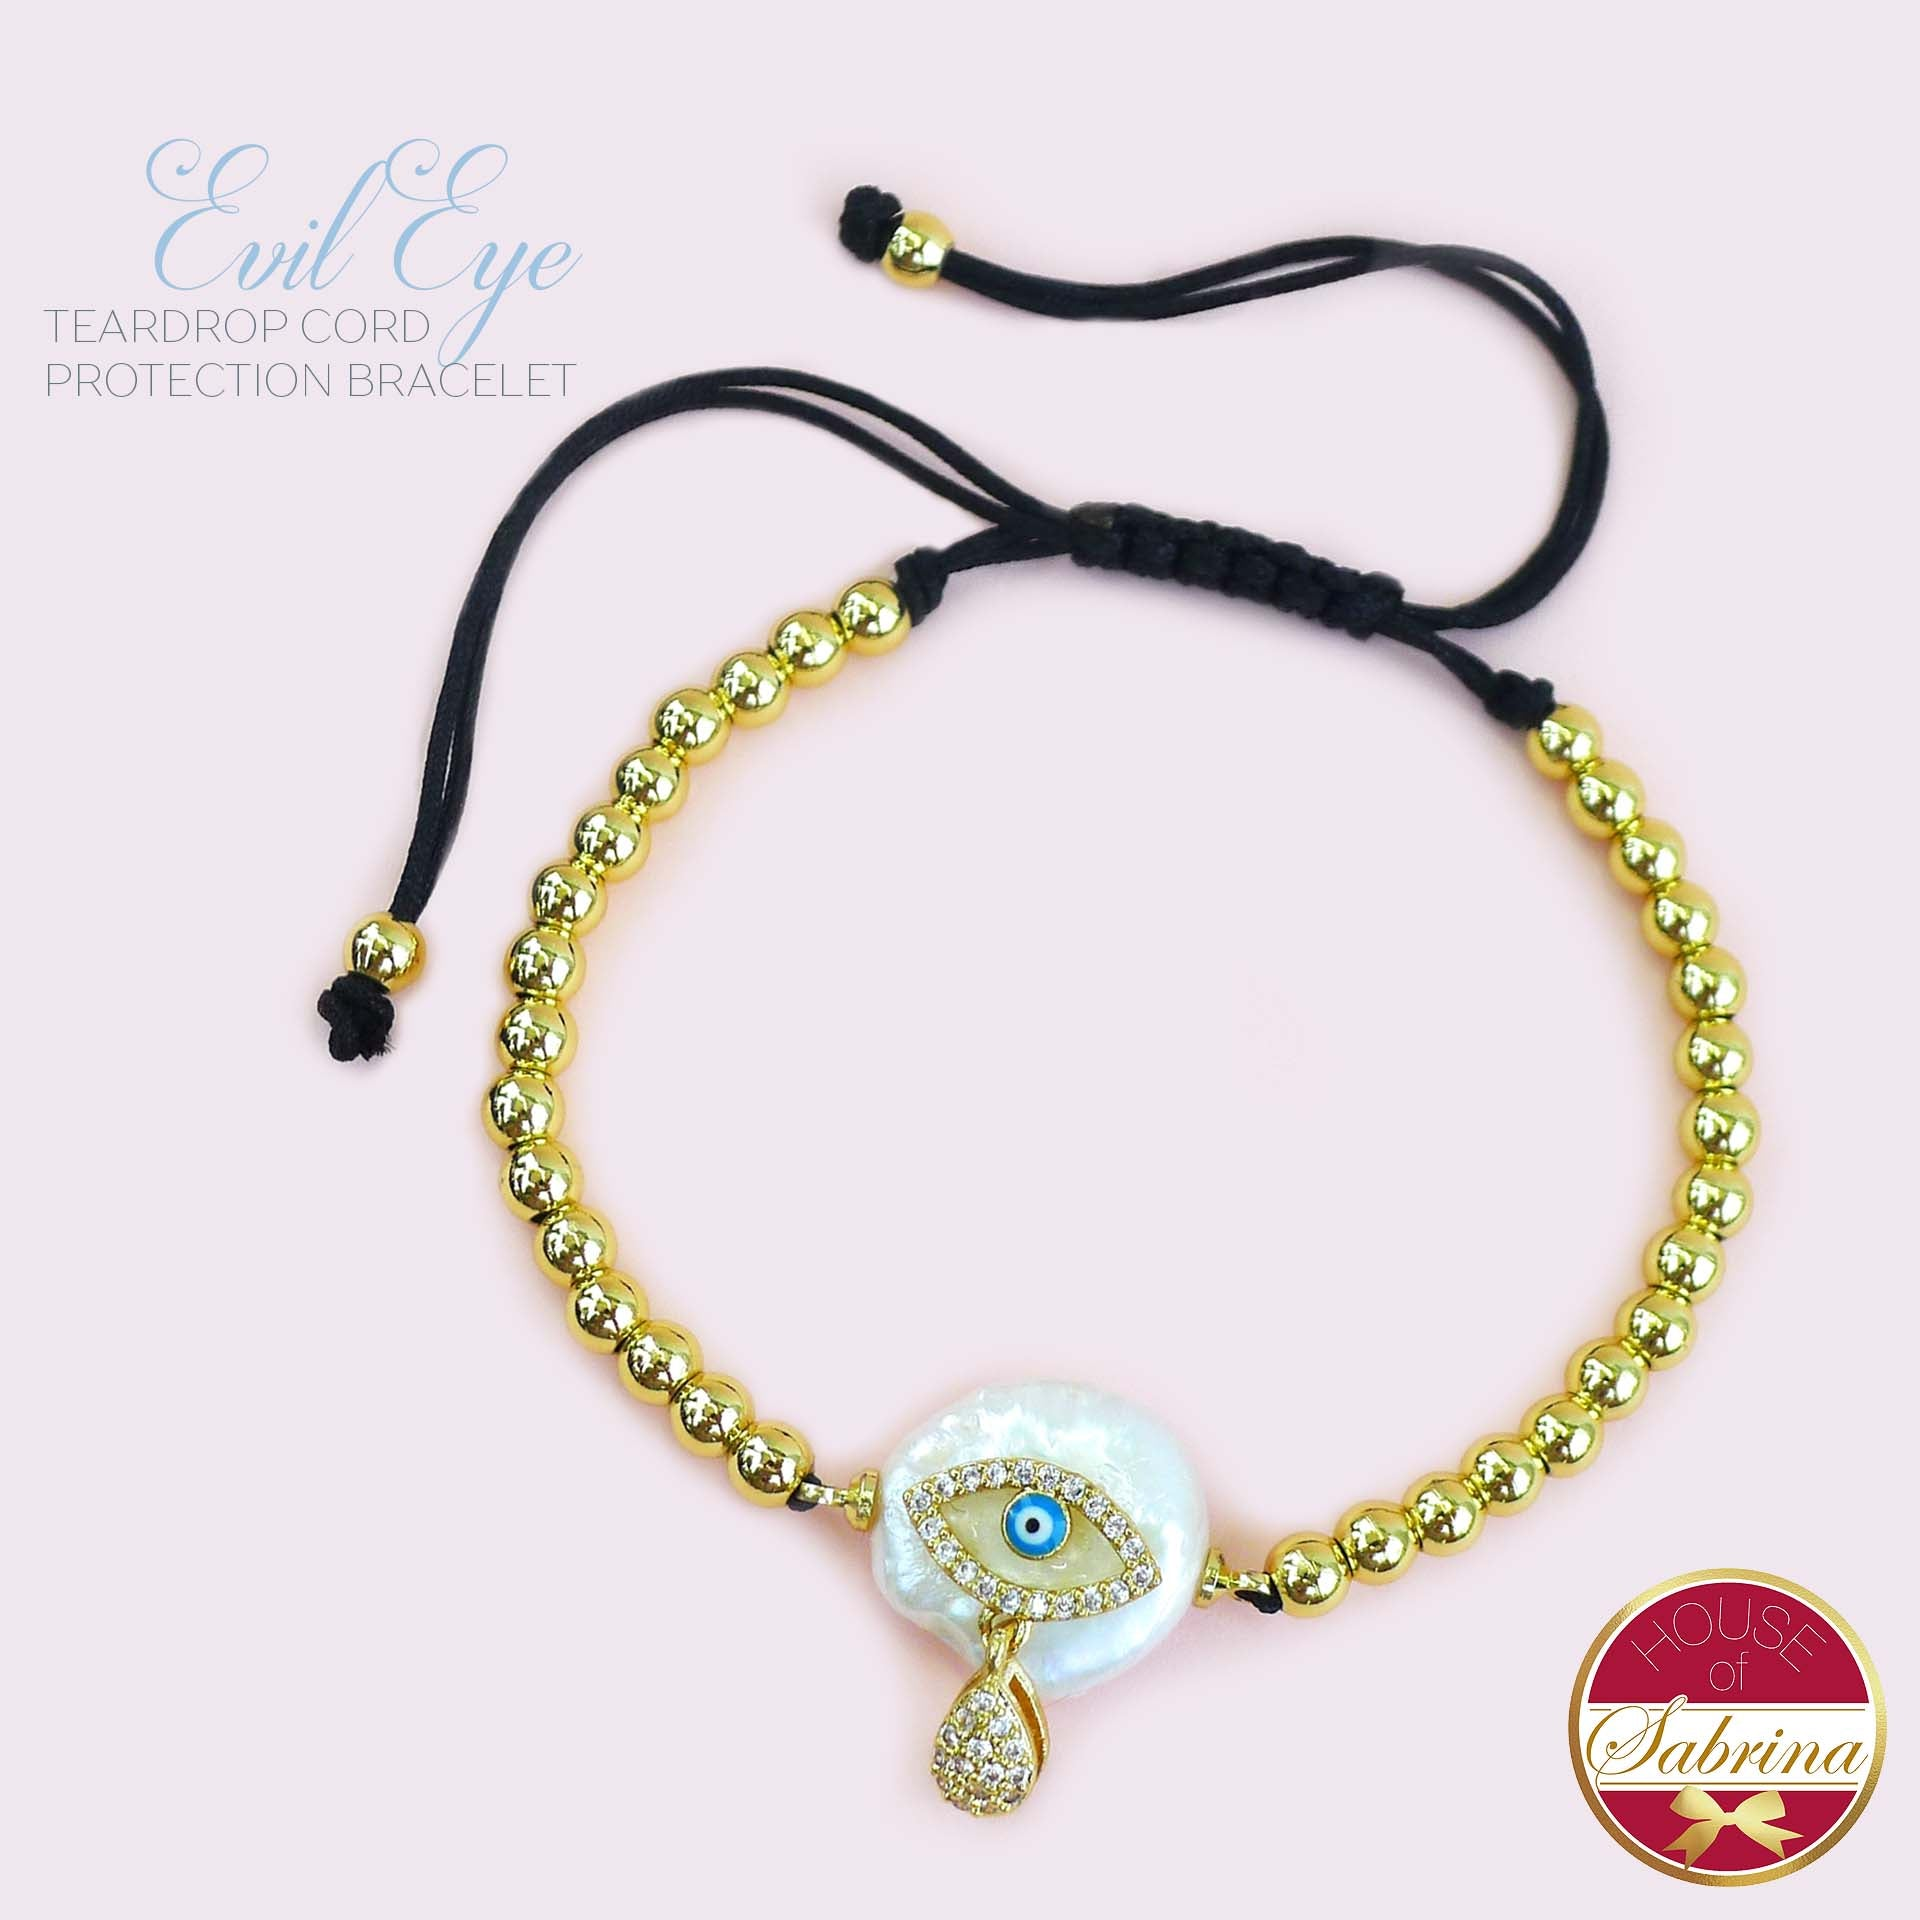 EVIL EYE TEARDROP CORD PROTECTION BRACELET